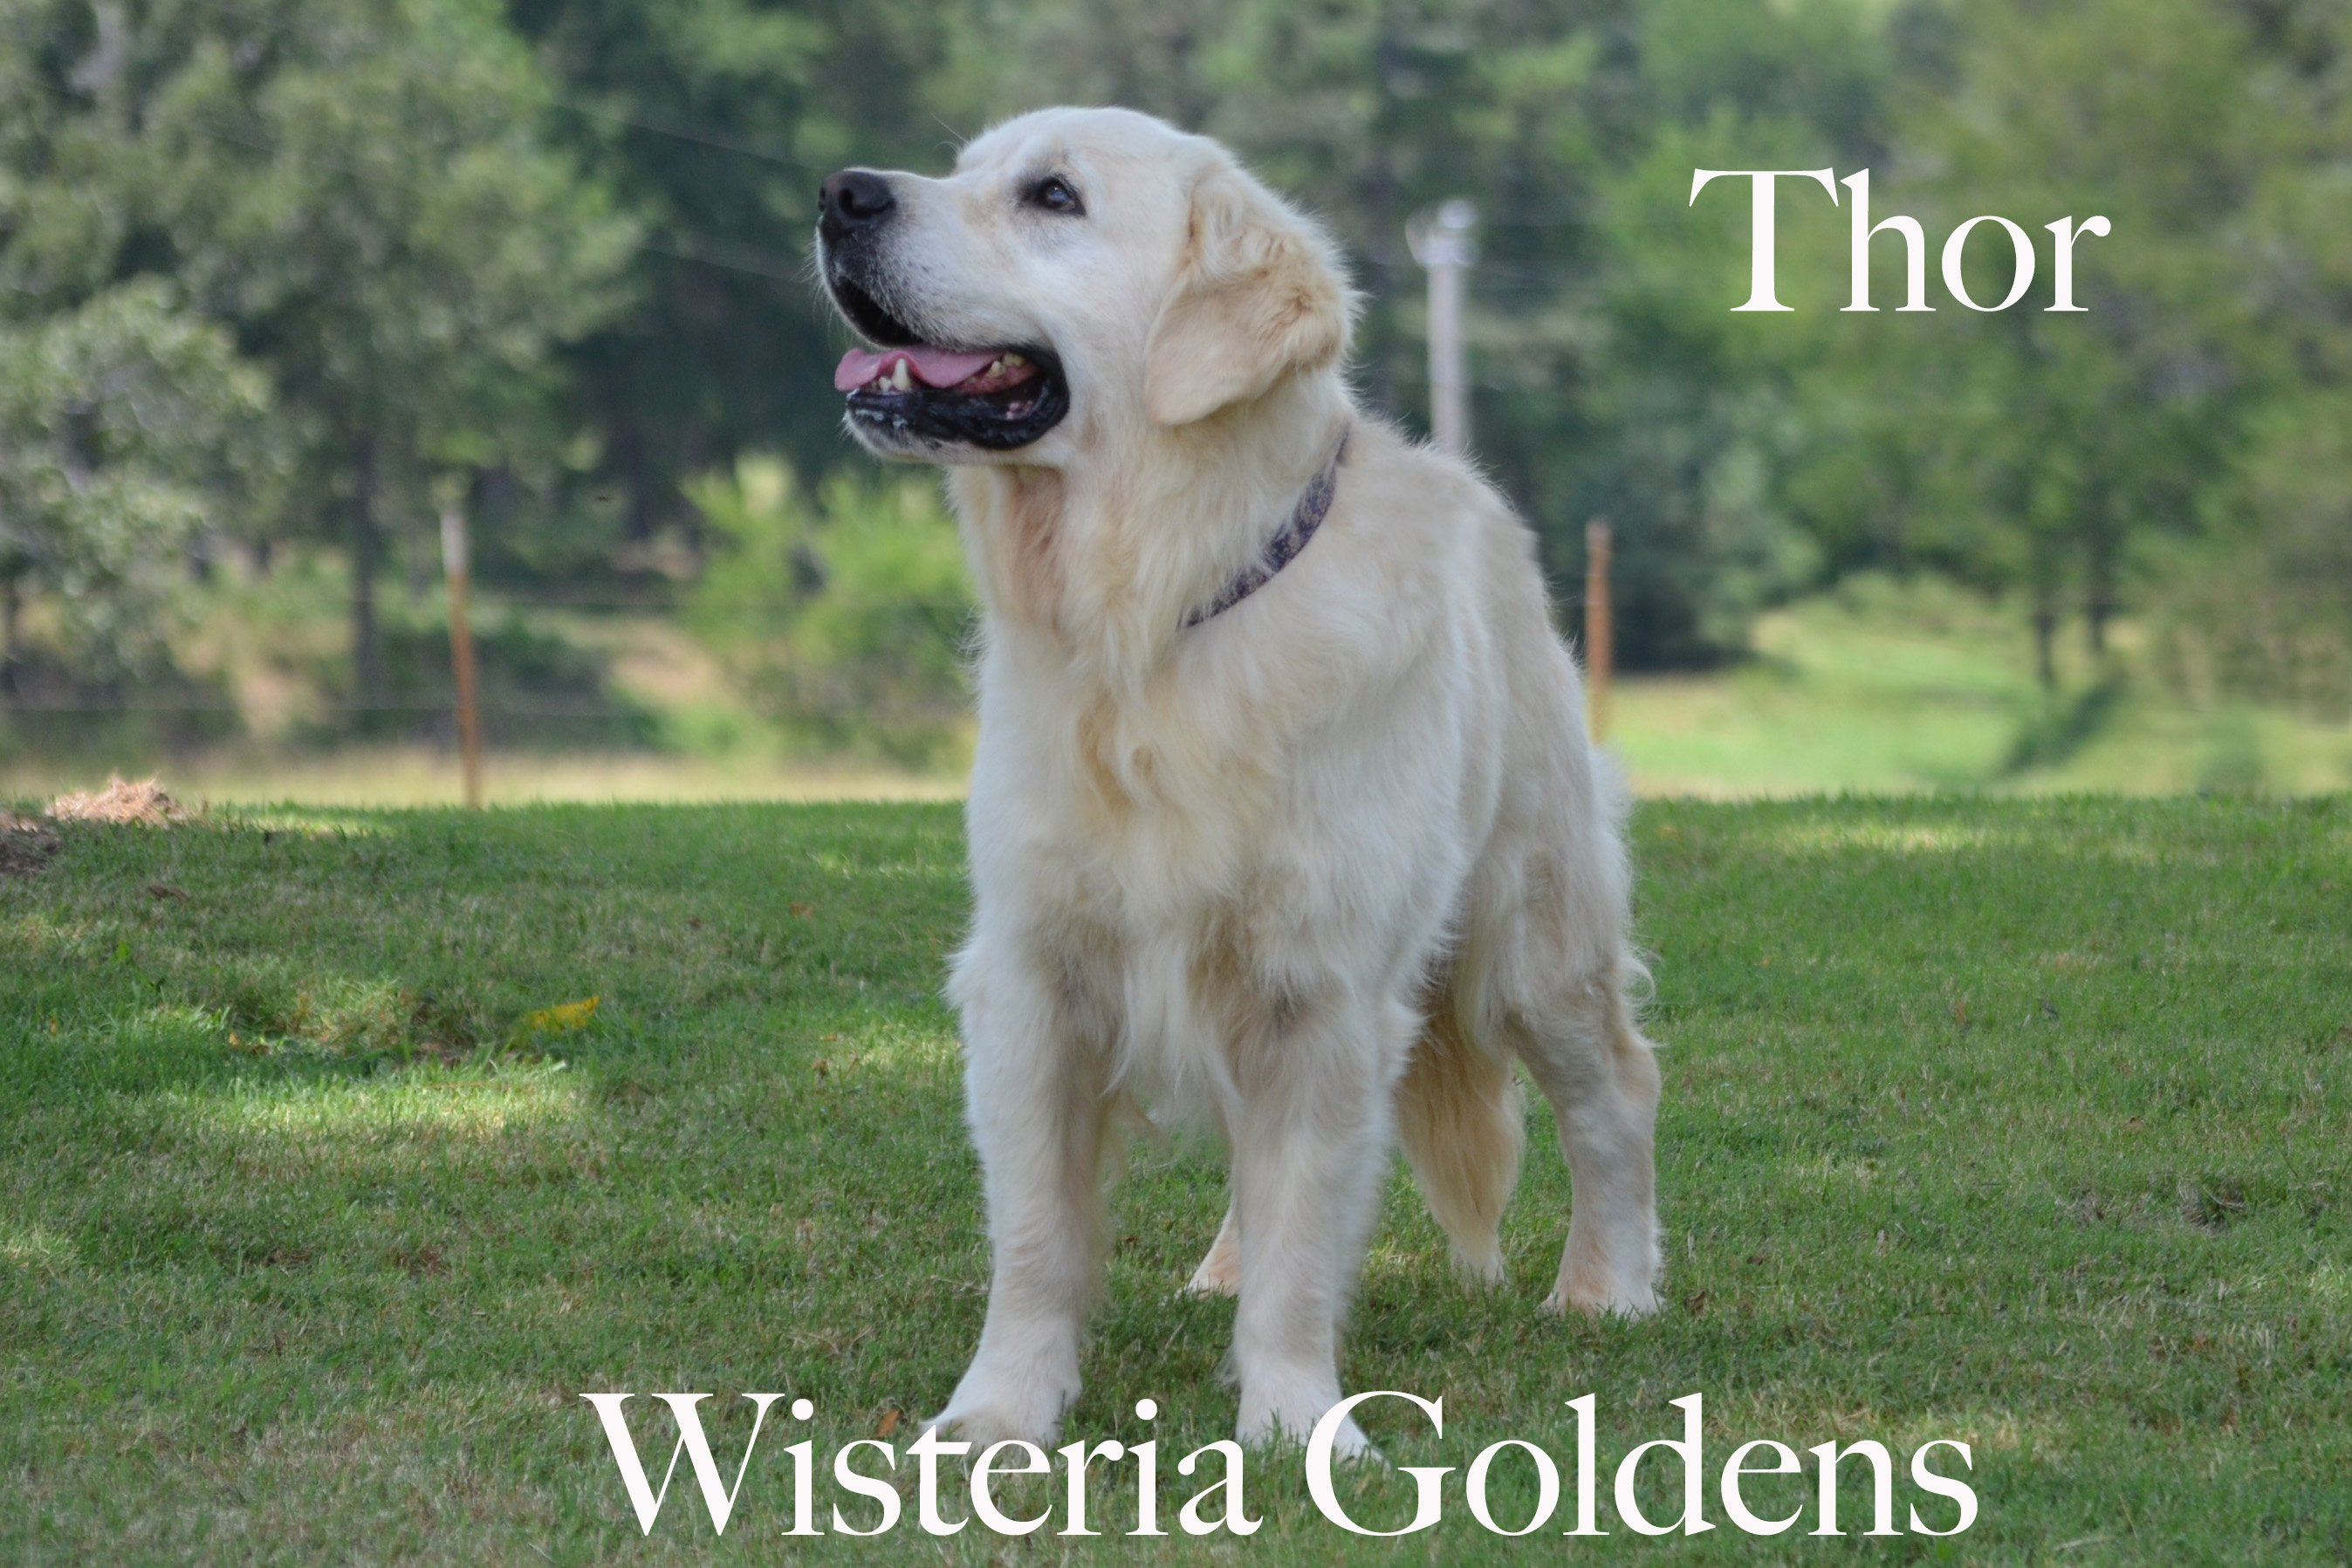 Thor-0454-thor-full-english-creme-golden-retrievers-wisteria-goldens